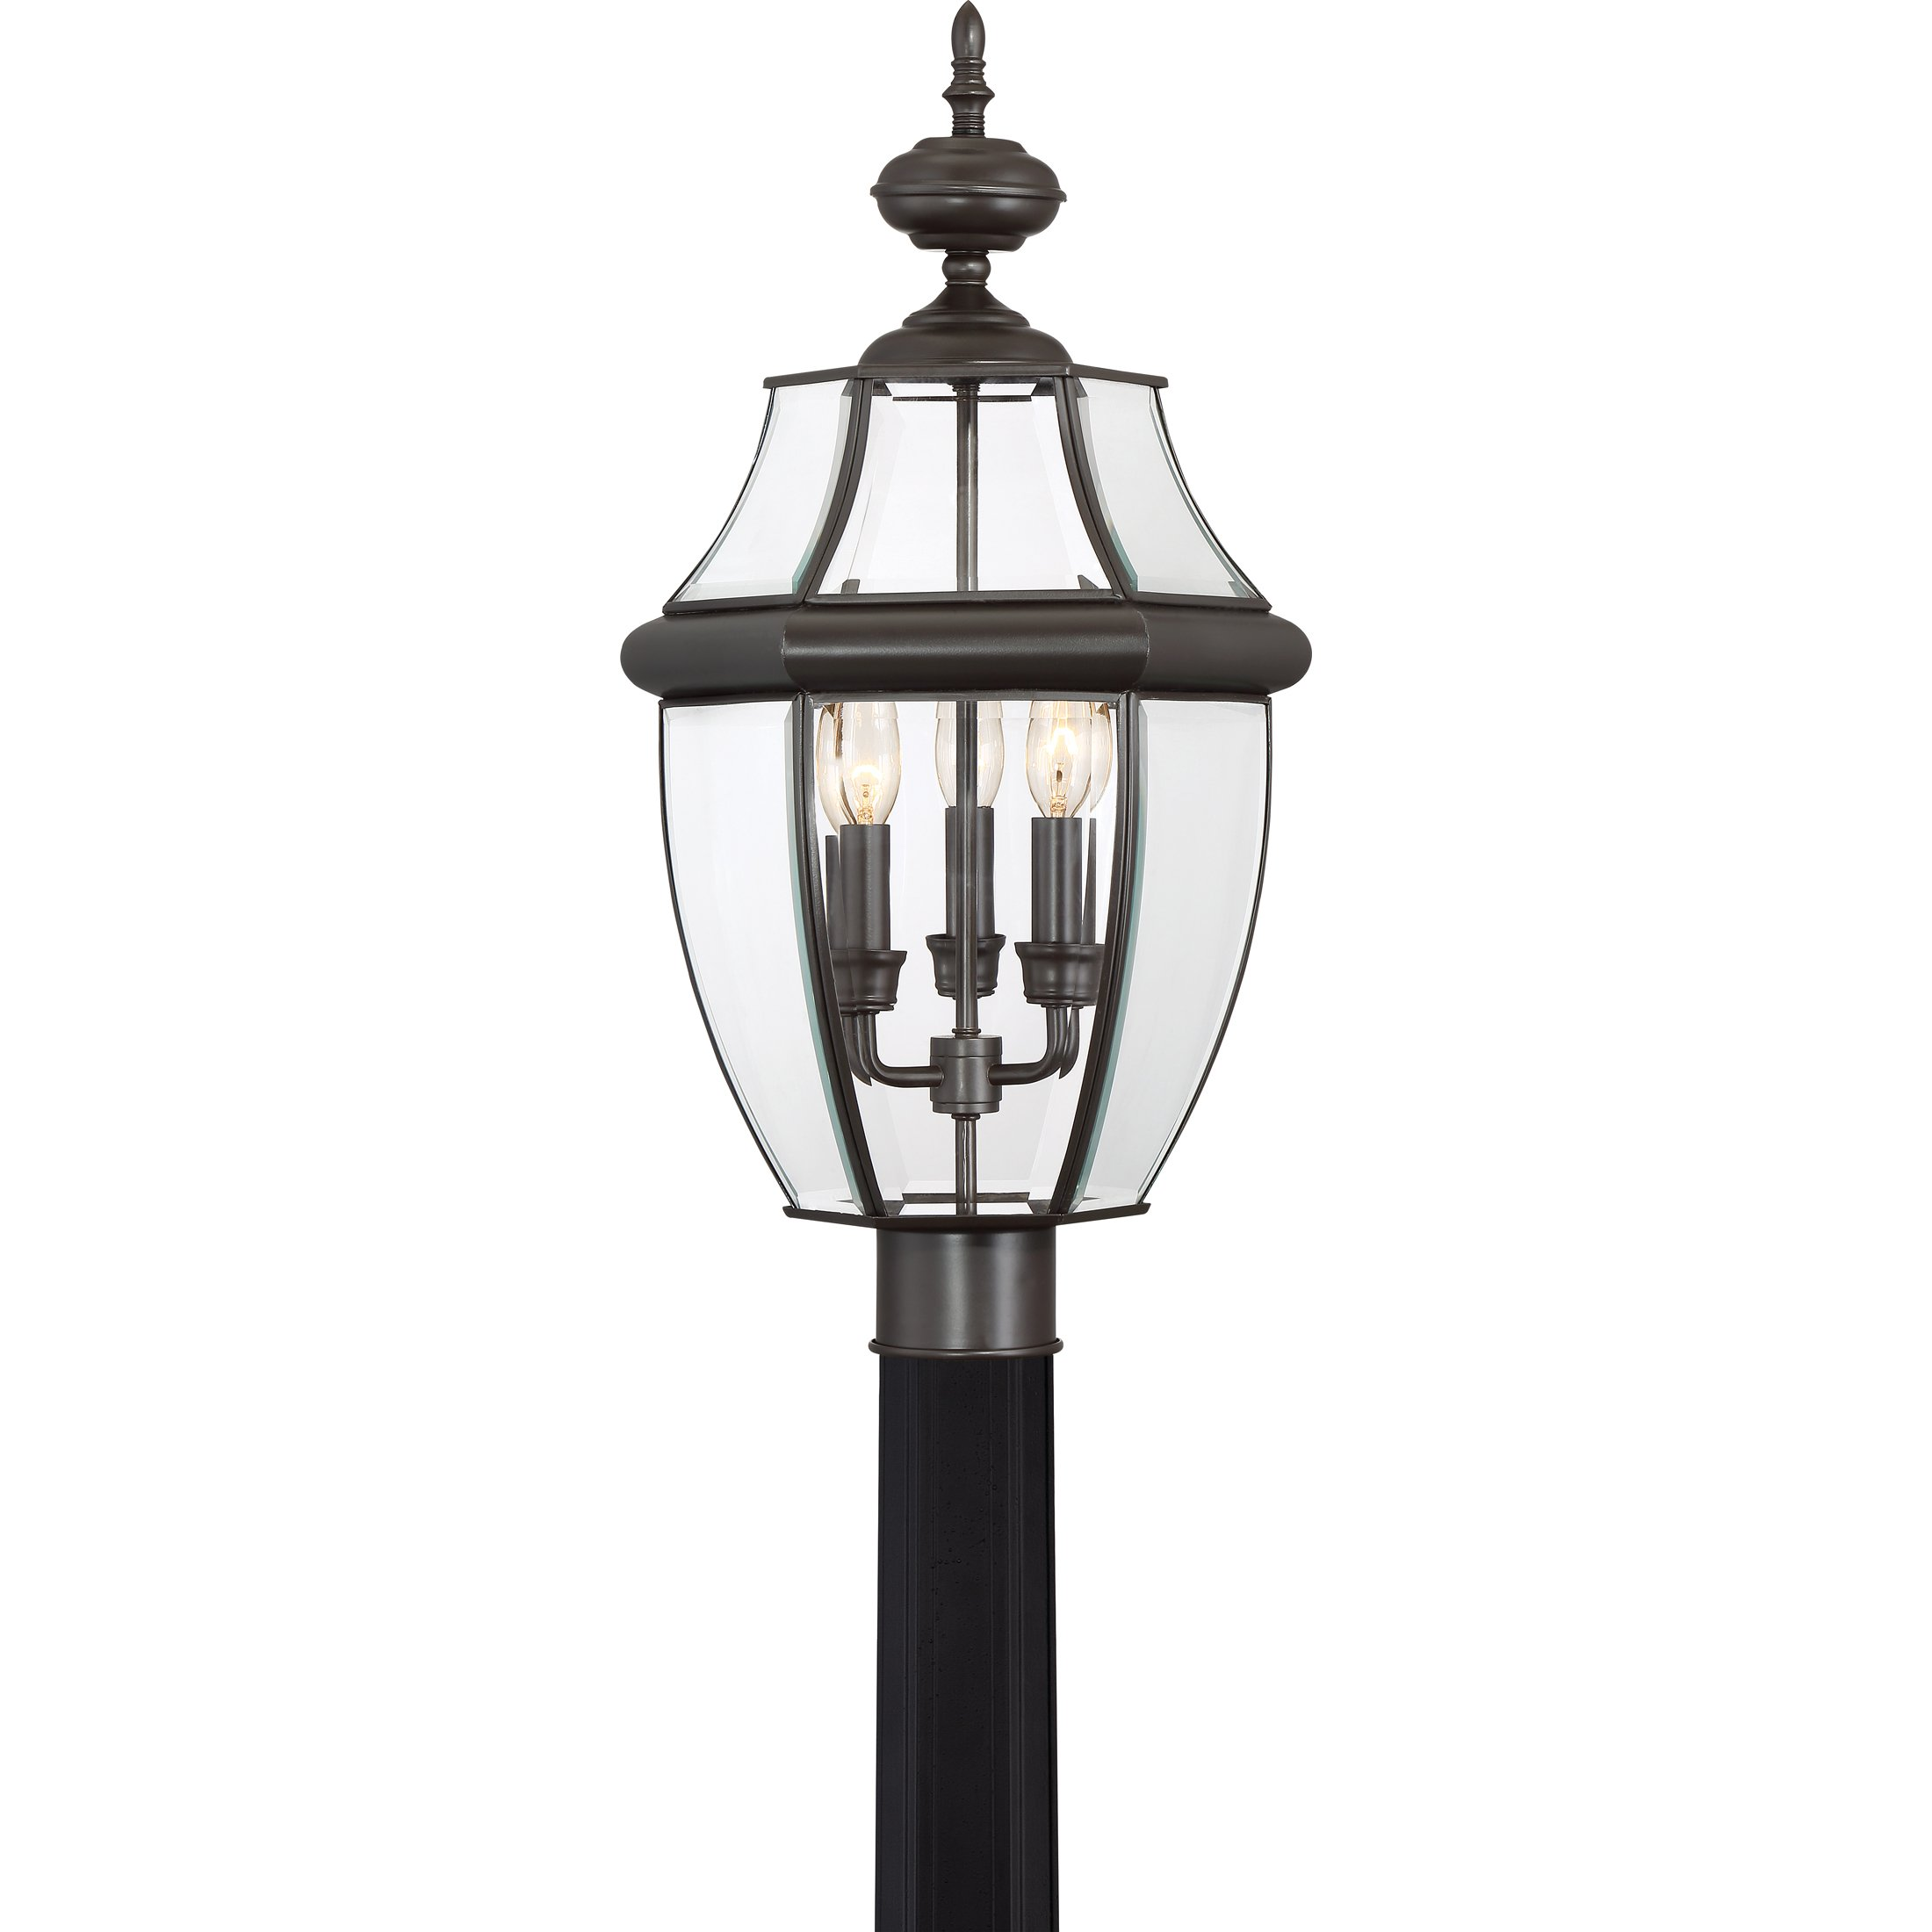 Quoizel NY9043Z Newbury 3-Light Outdoor Post Lantern, Medici Bronze by Quoizel